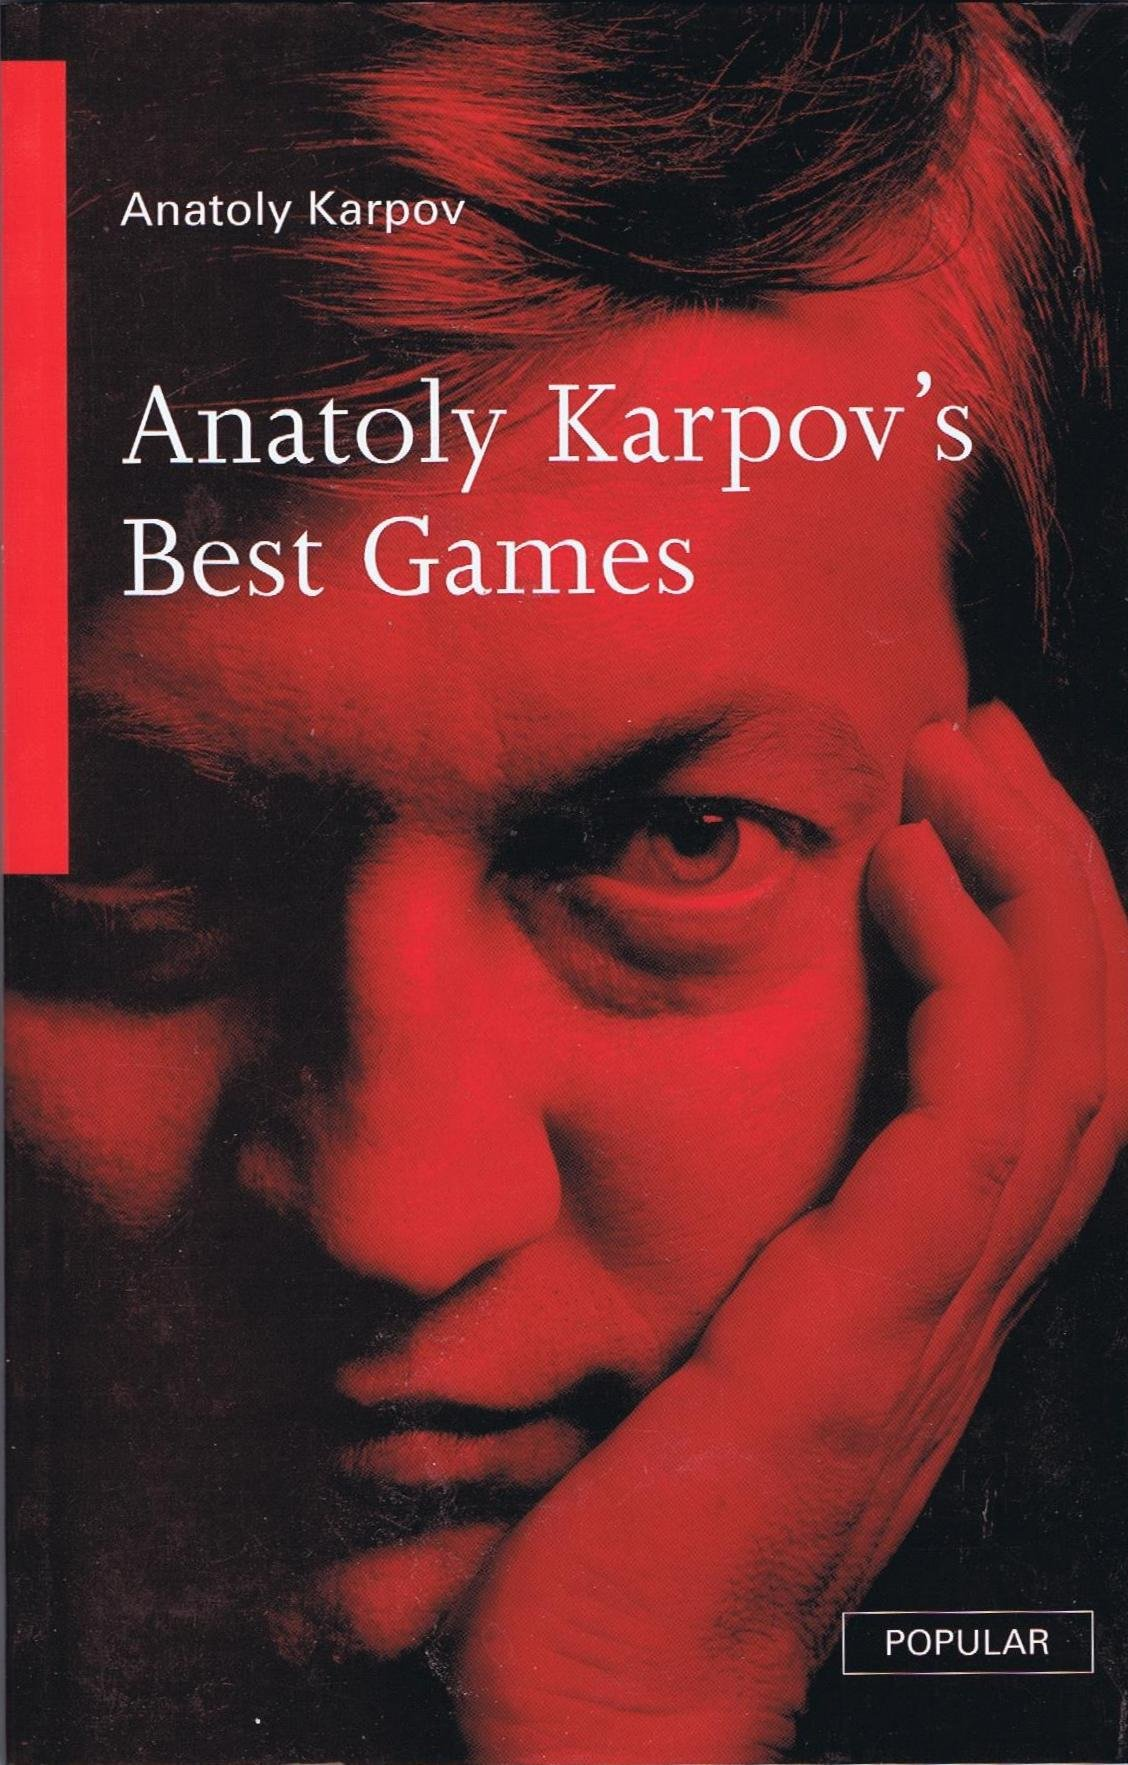 Anatoly Karpov's Best Games (Batsford 1996, ISBN 0 7134 7843 8)